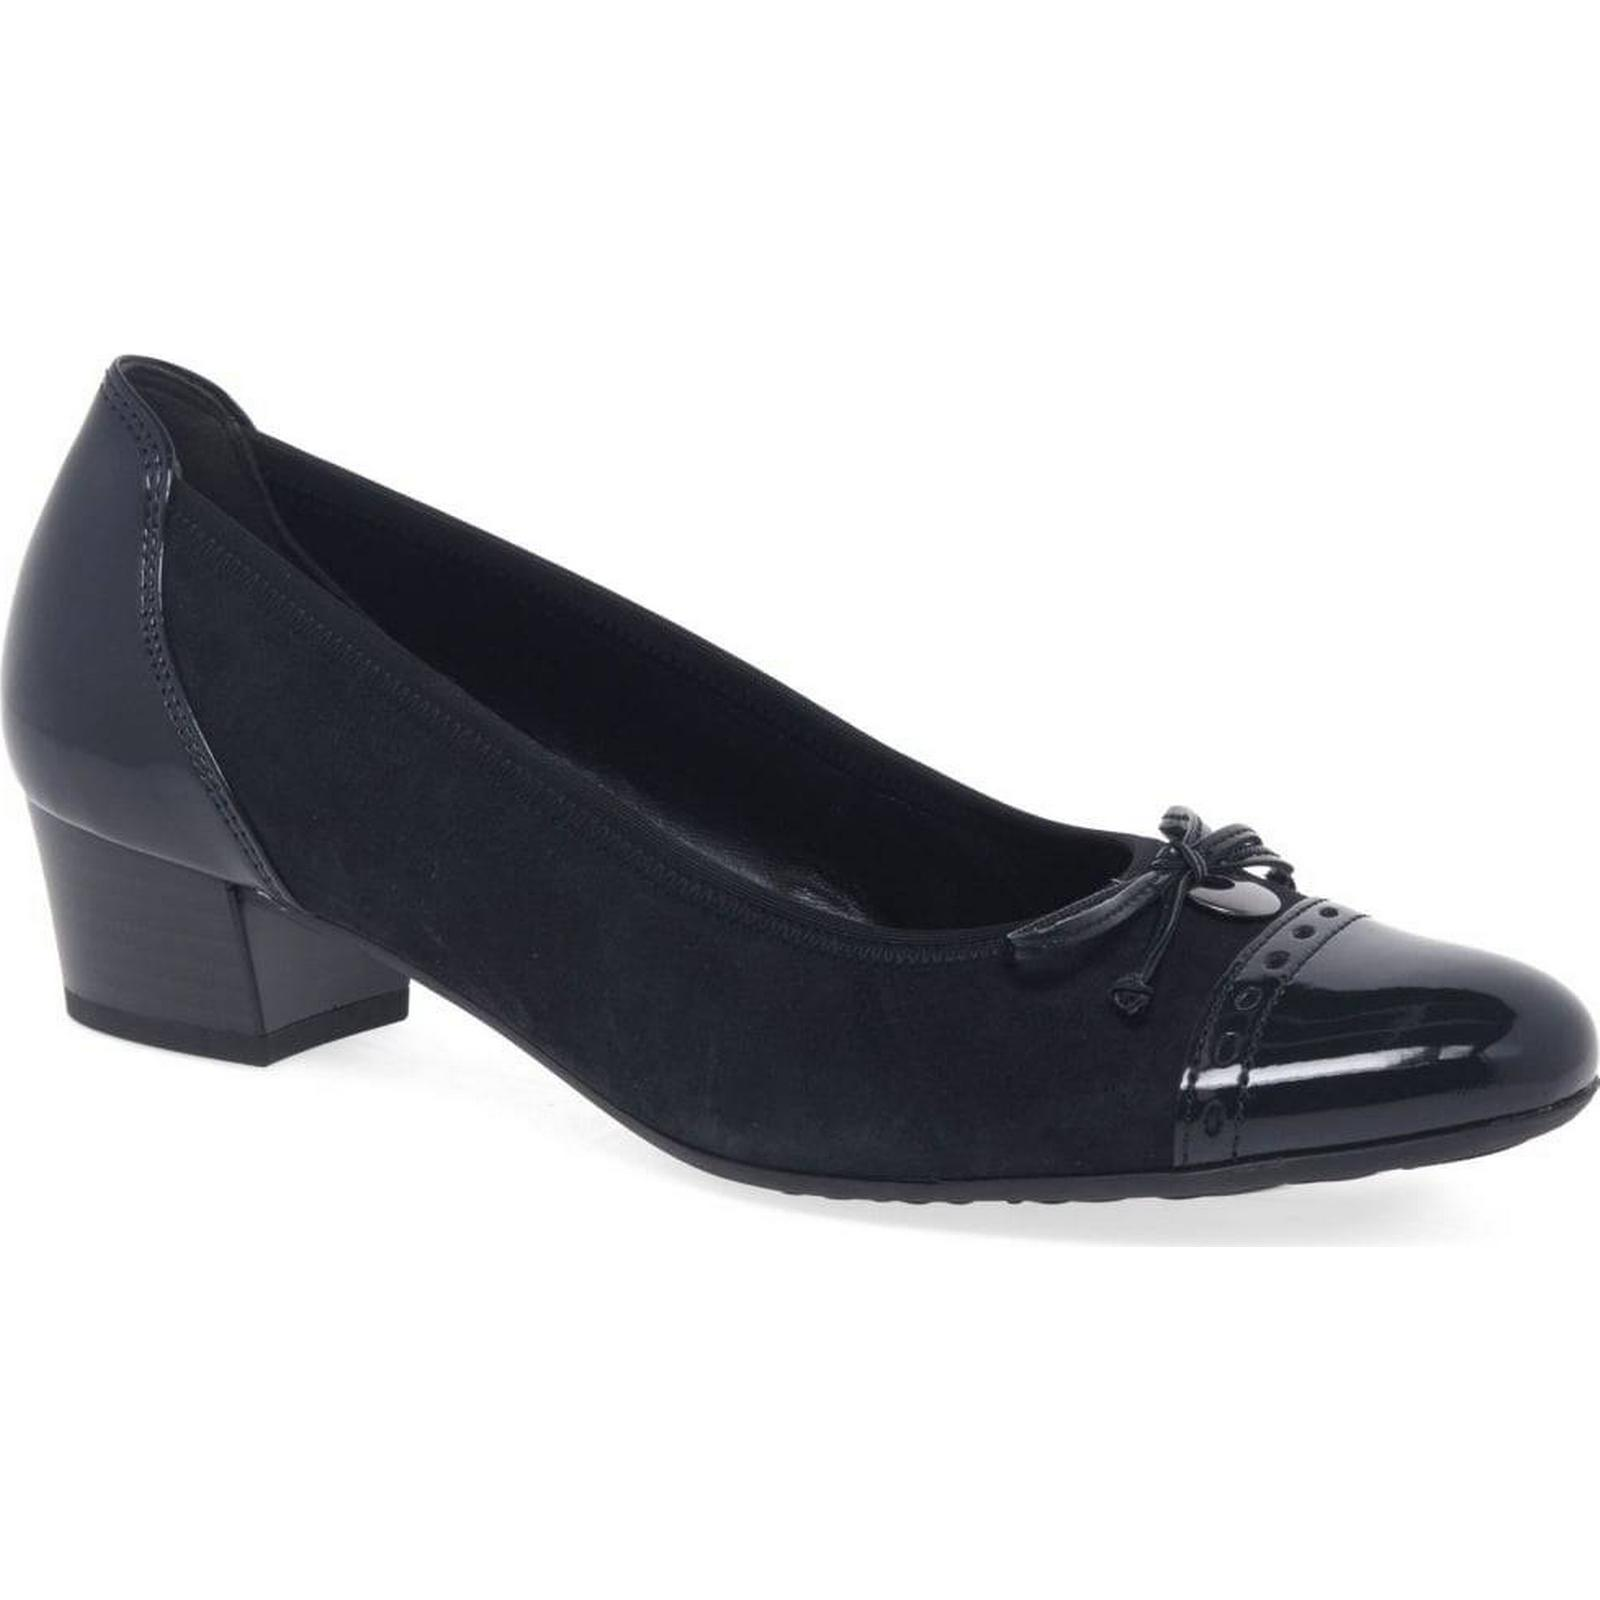 Gabor Islay Womens Casual Shoes 3 Colour: Pacific Suede/Patent, Size: 3 Shoes 84169f